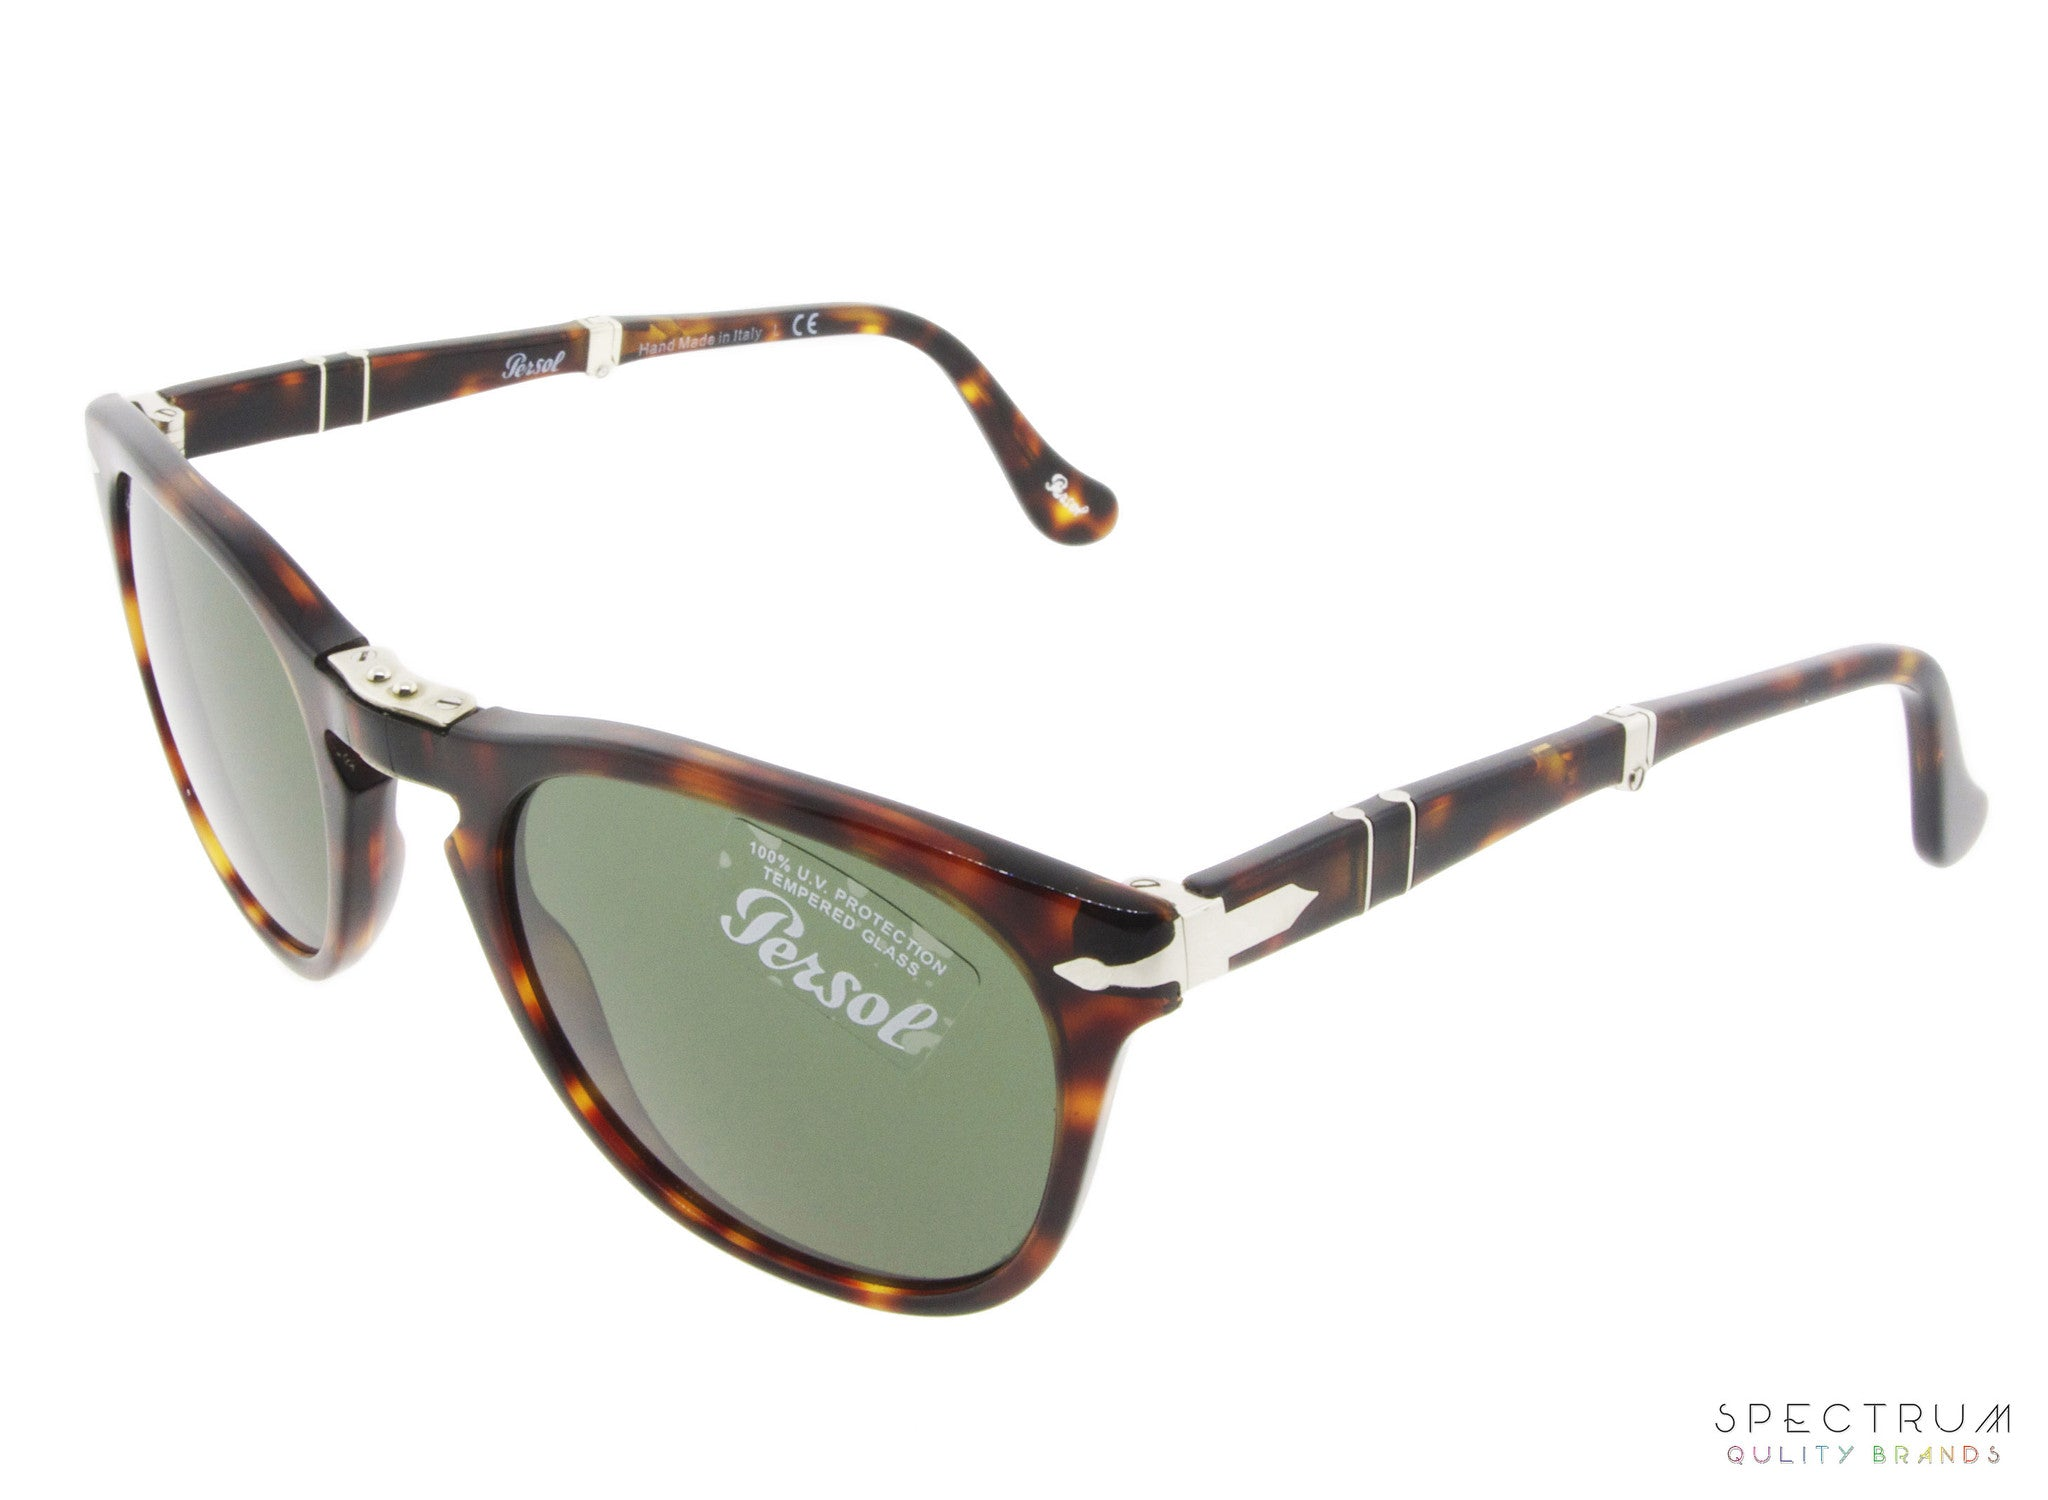 bed4014108 ... Persol Sunglasses Folding 3028S 24 31 Havana with Green Lenses ...